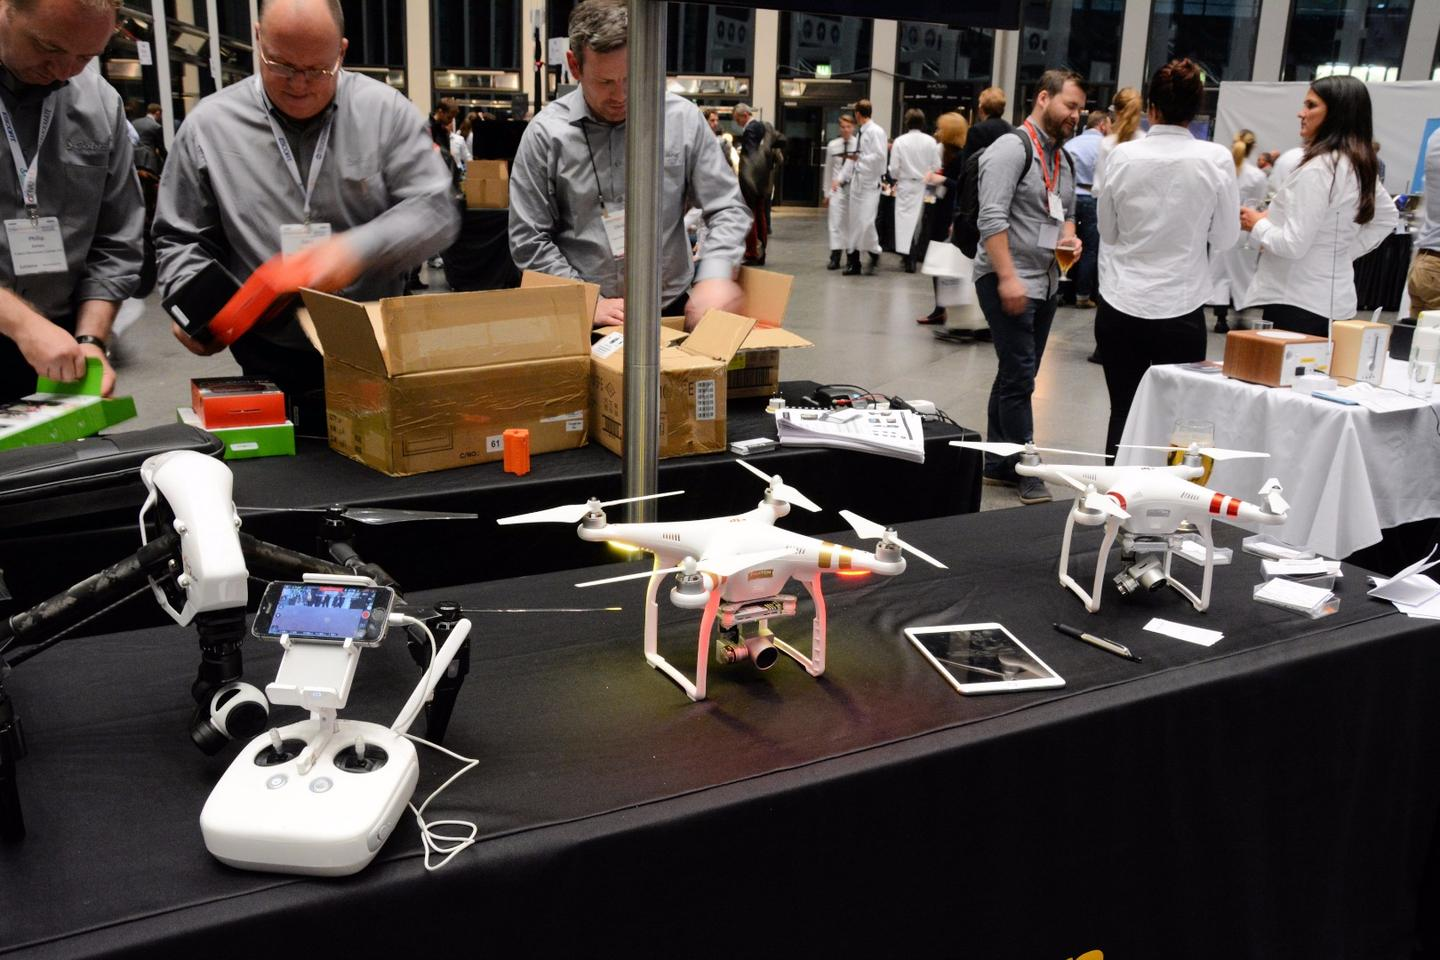 DJI announced a firmware update for its Phantom 3 family at IFA 2015